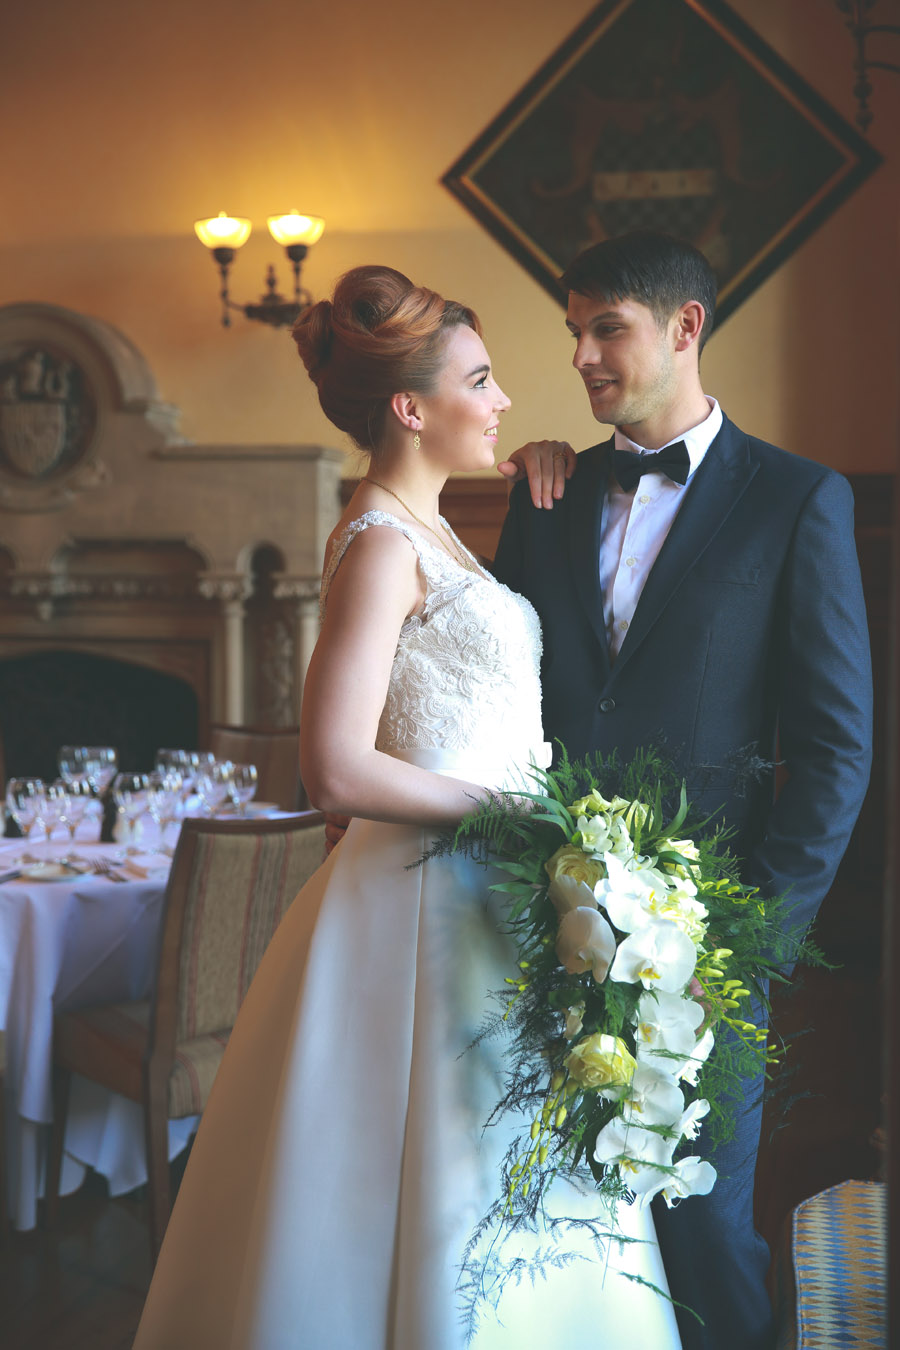 Classic couture wedding styling at the Elvetham, image credit Nicola Rowley Photography (10)